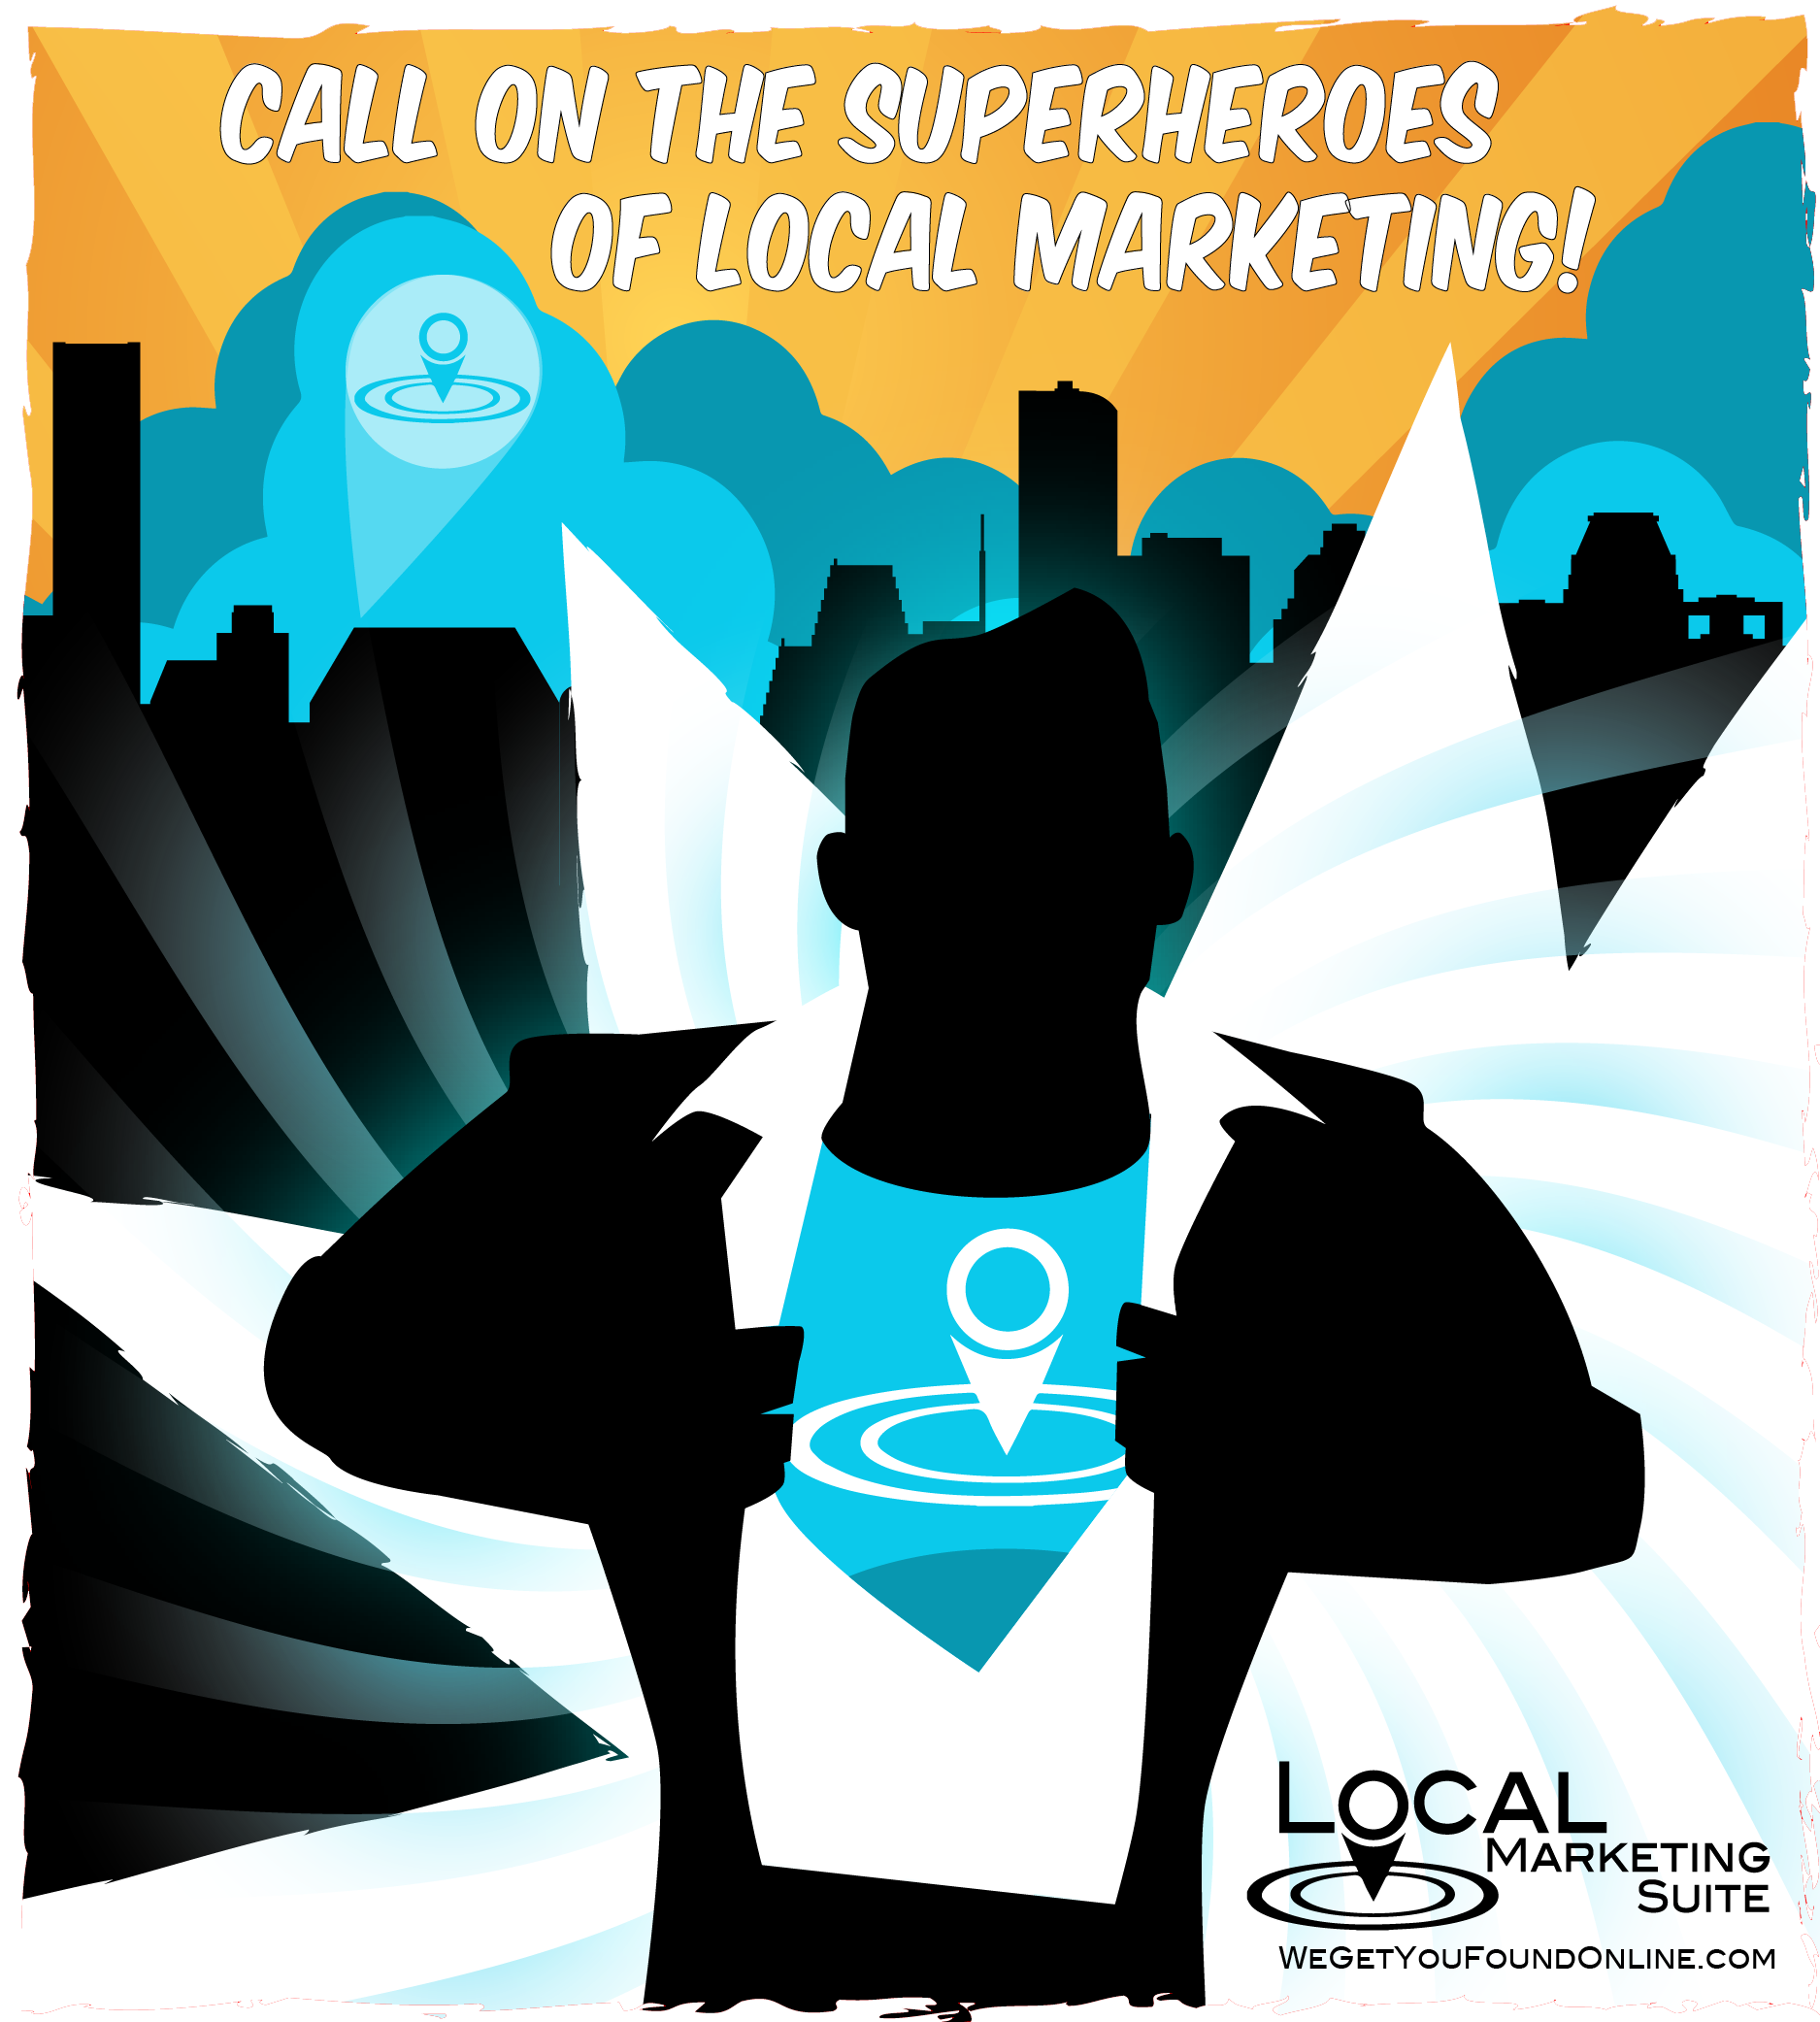 LOCAL MARKETING SUITE